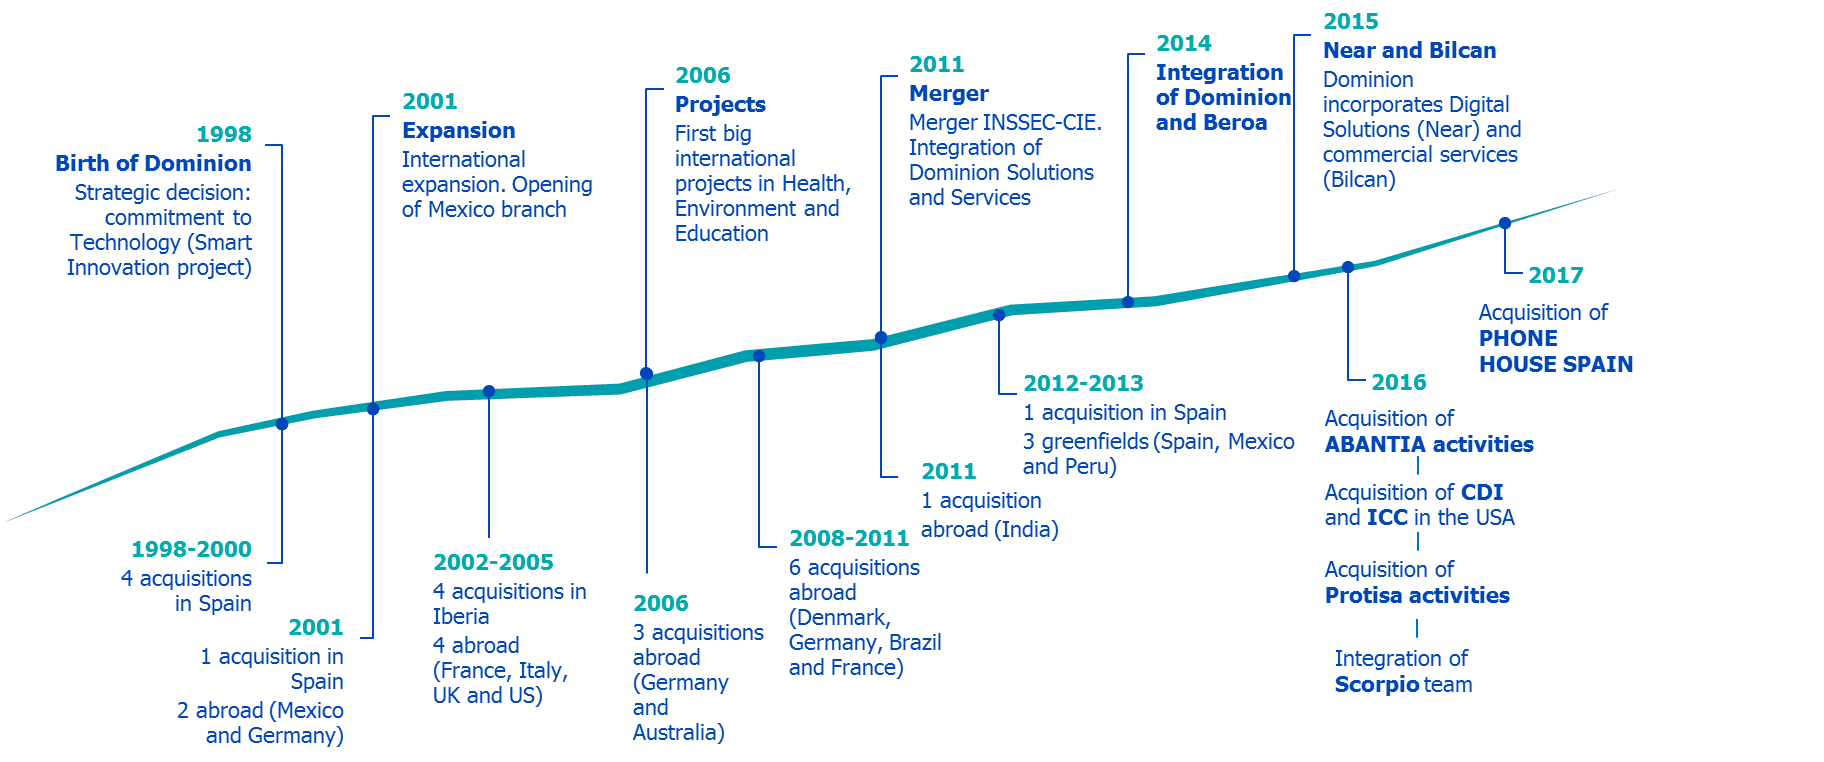 Global Dominion Access, S.A. Timeline